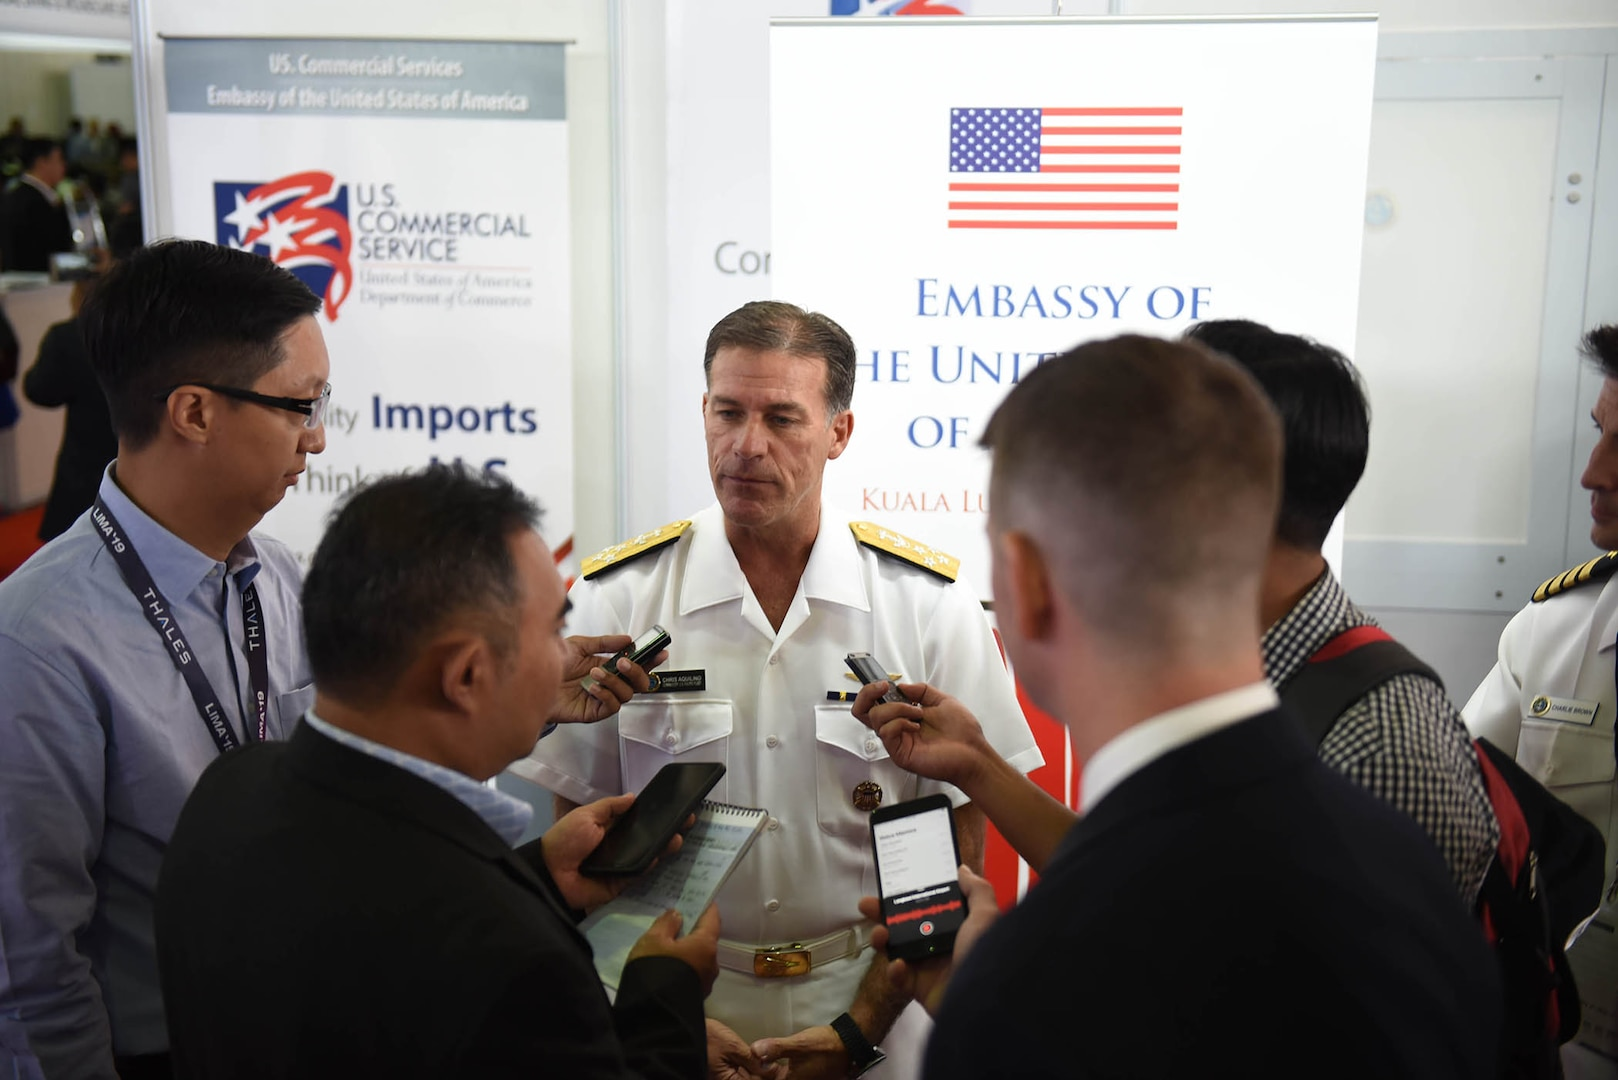 U.S. Pacific Fleet Commander Promotes Mutual Respect, Partnerships during LIMA Exhibition